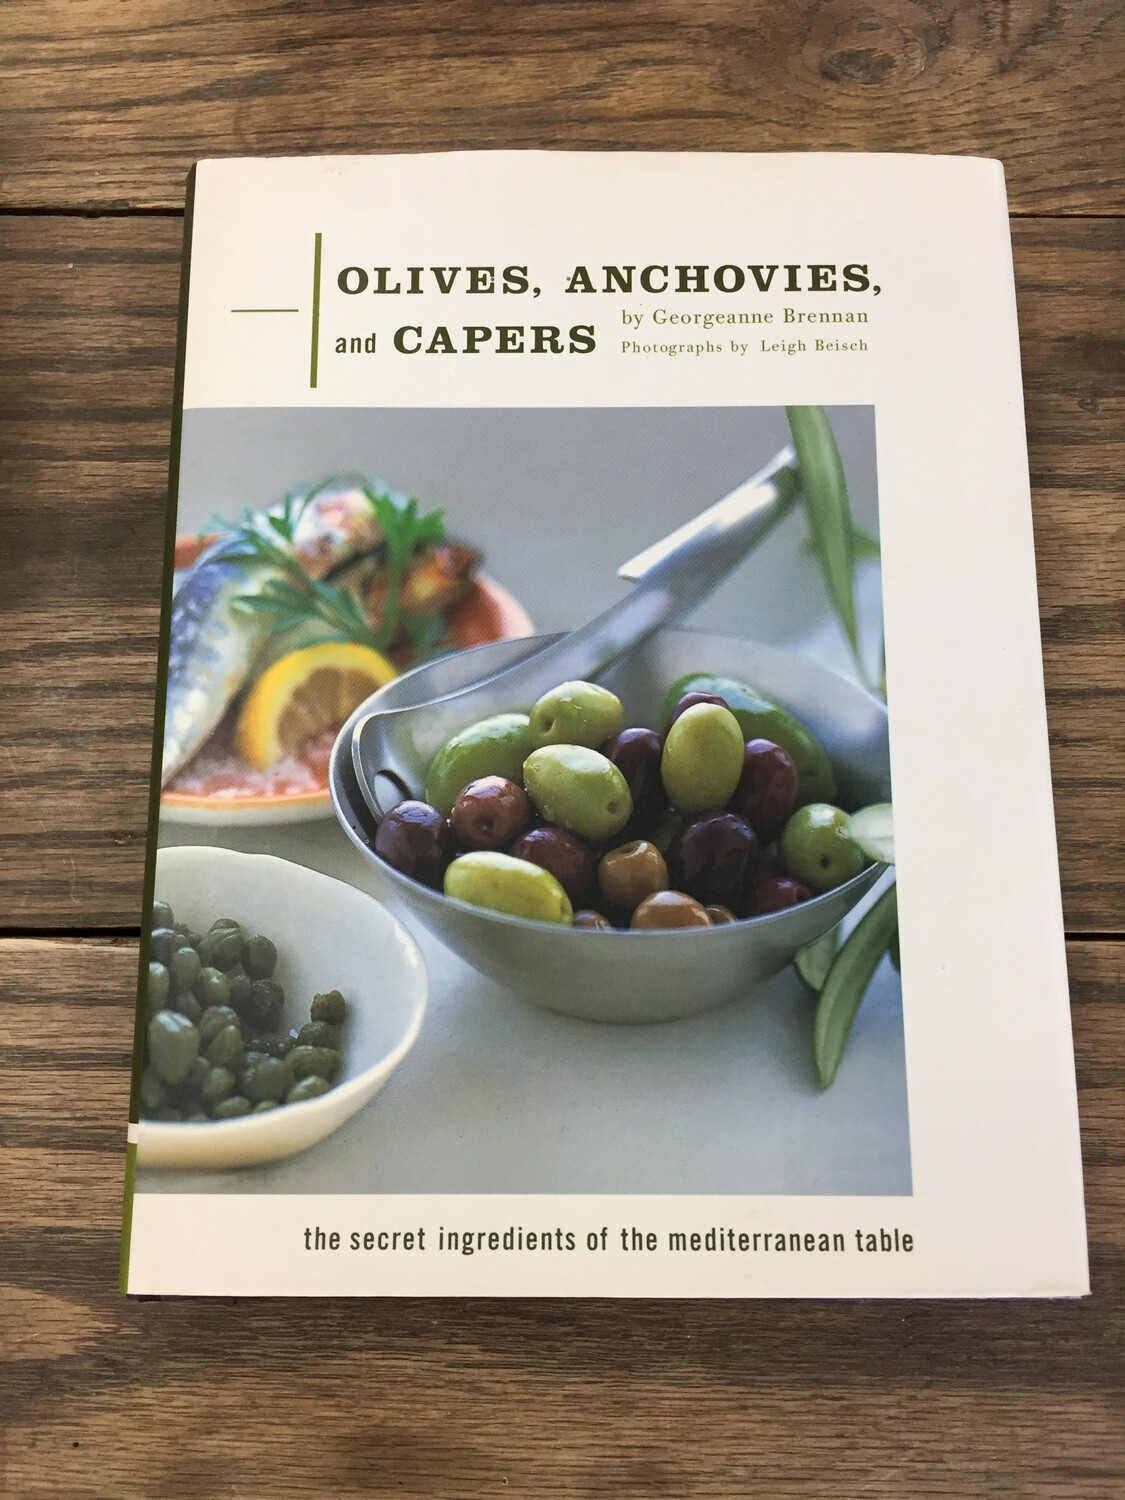 Olives, Anchovies, and Capers